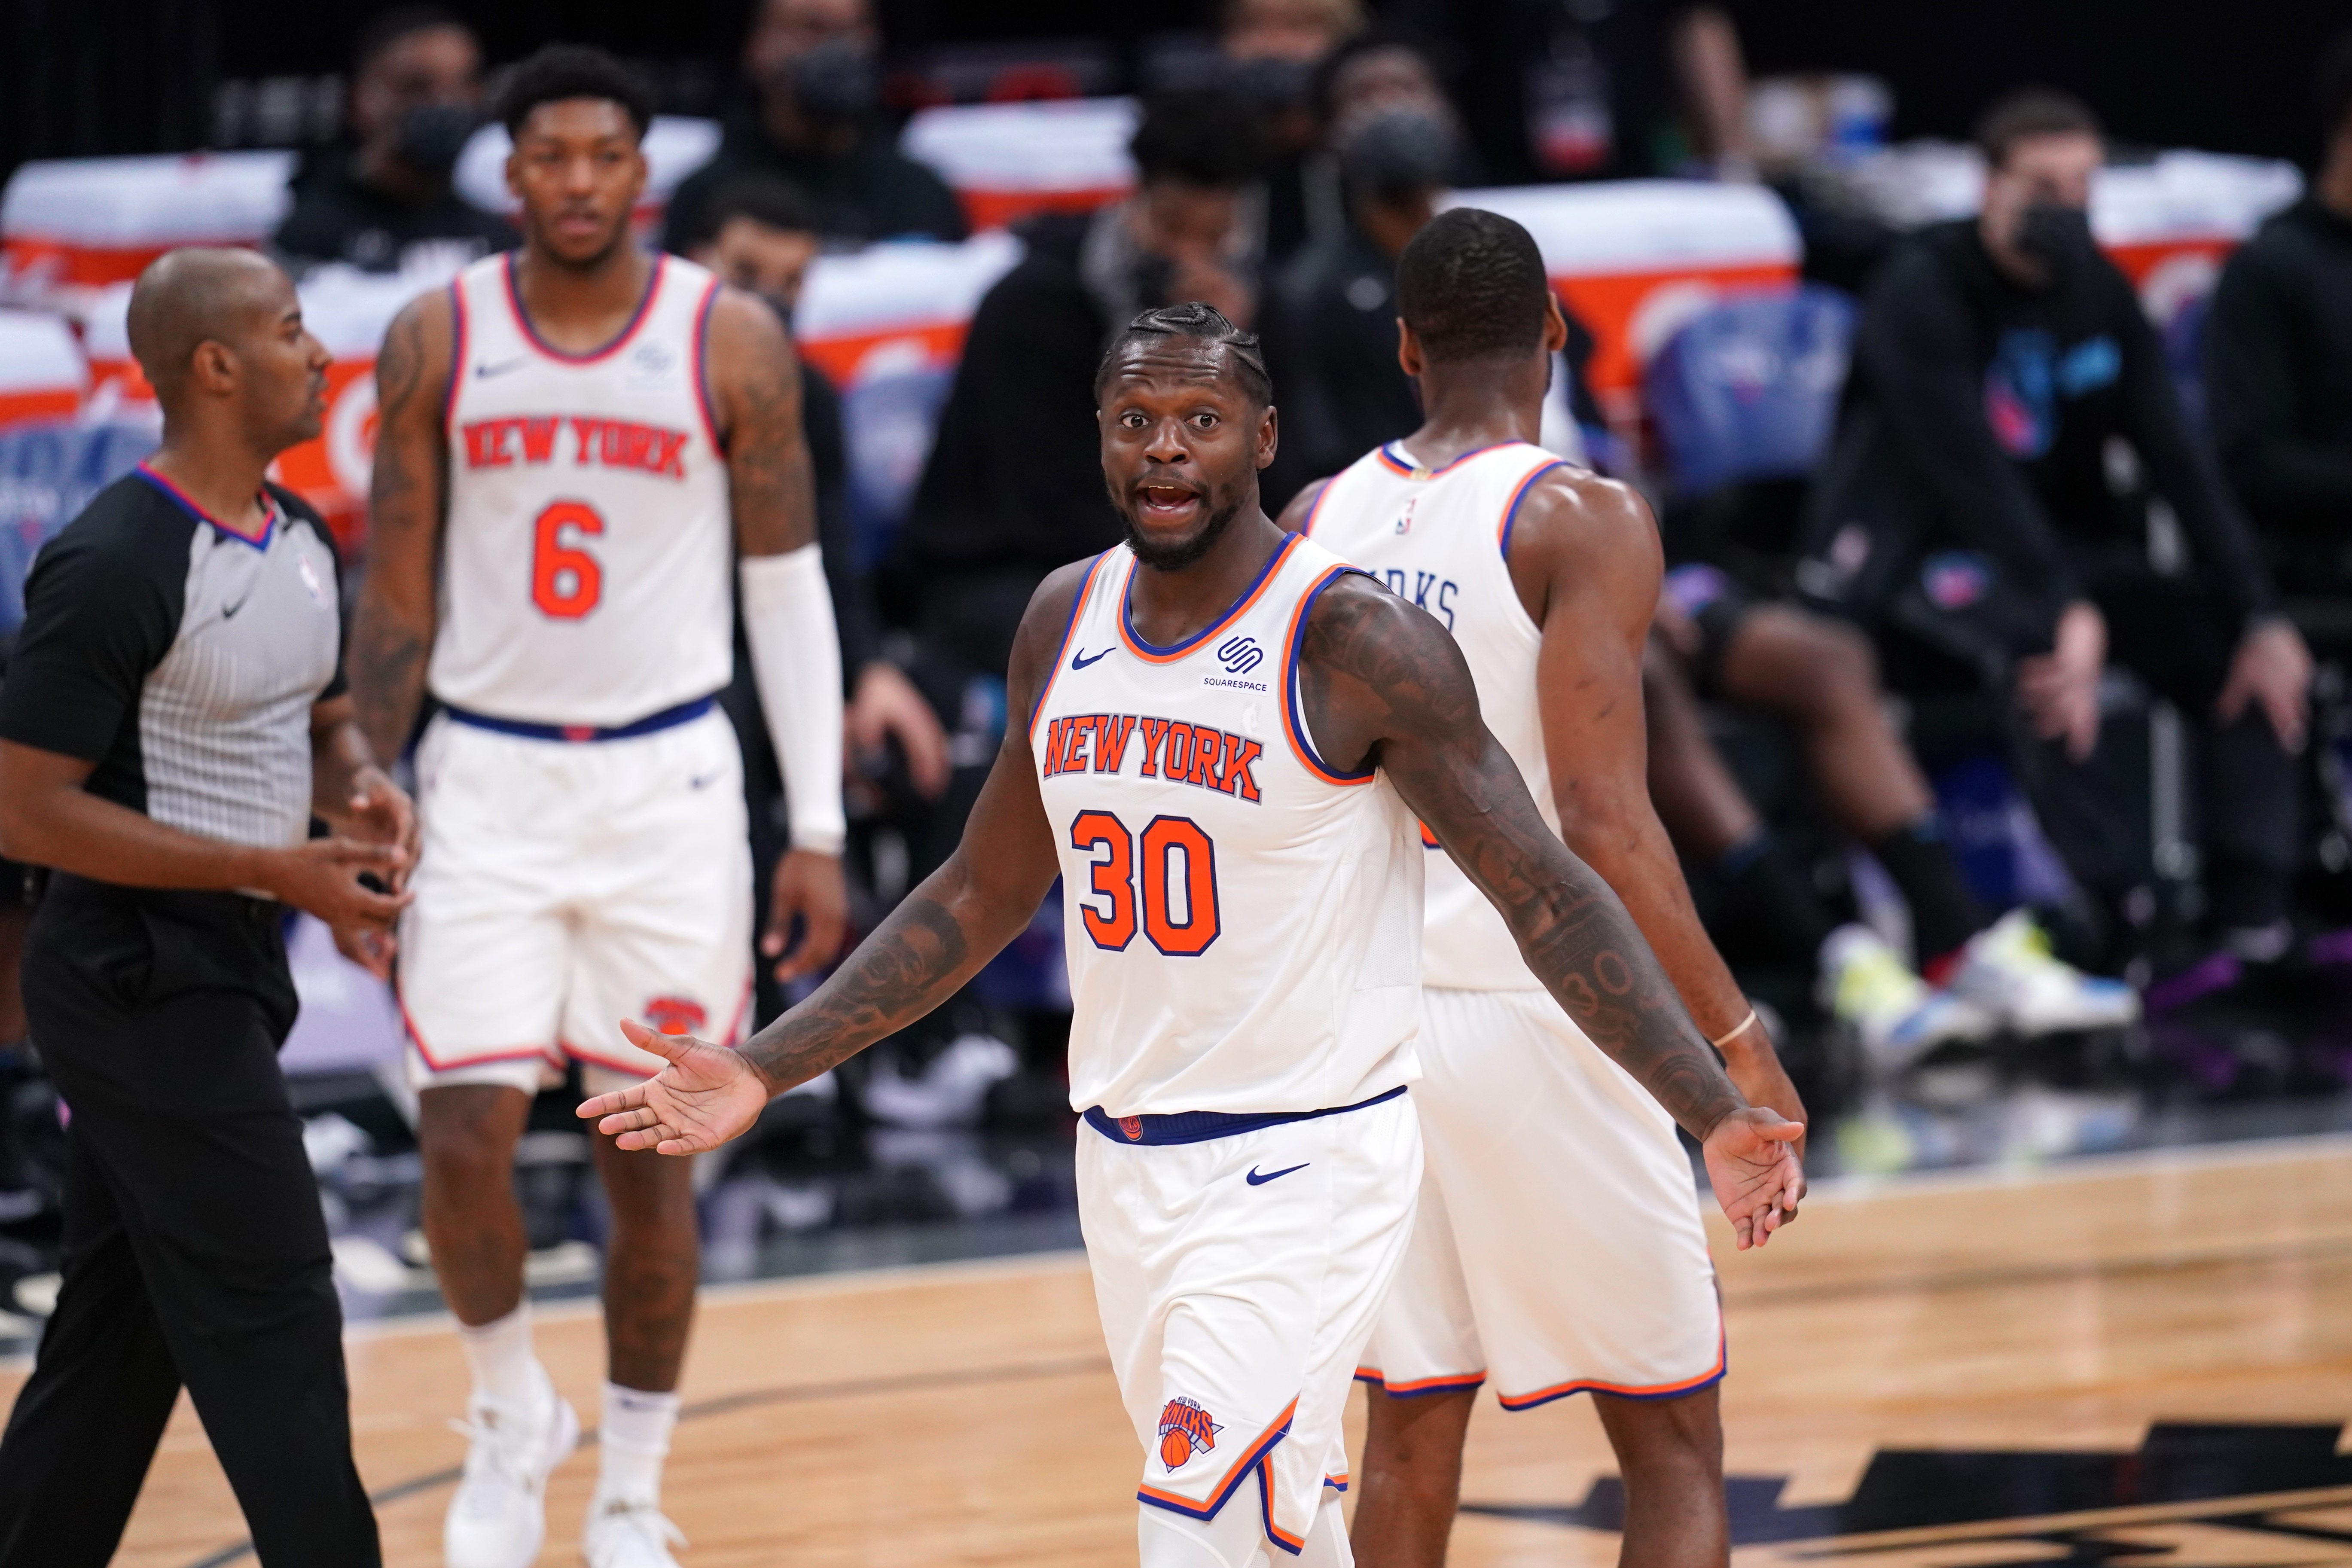 It's official, the New York Knicks are making noise in the NBA